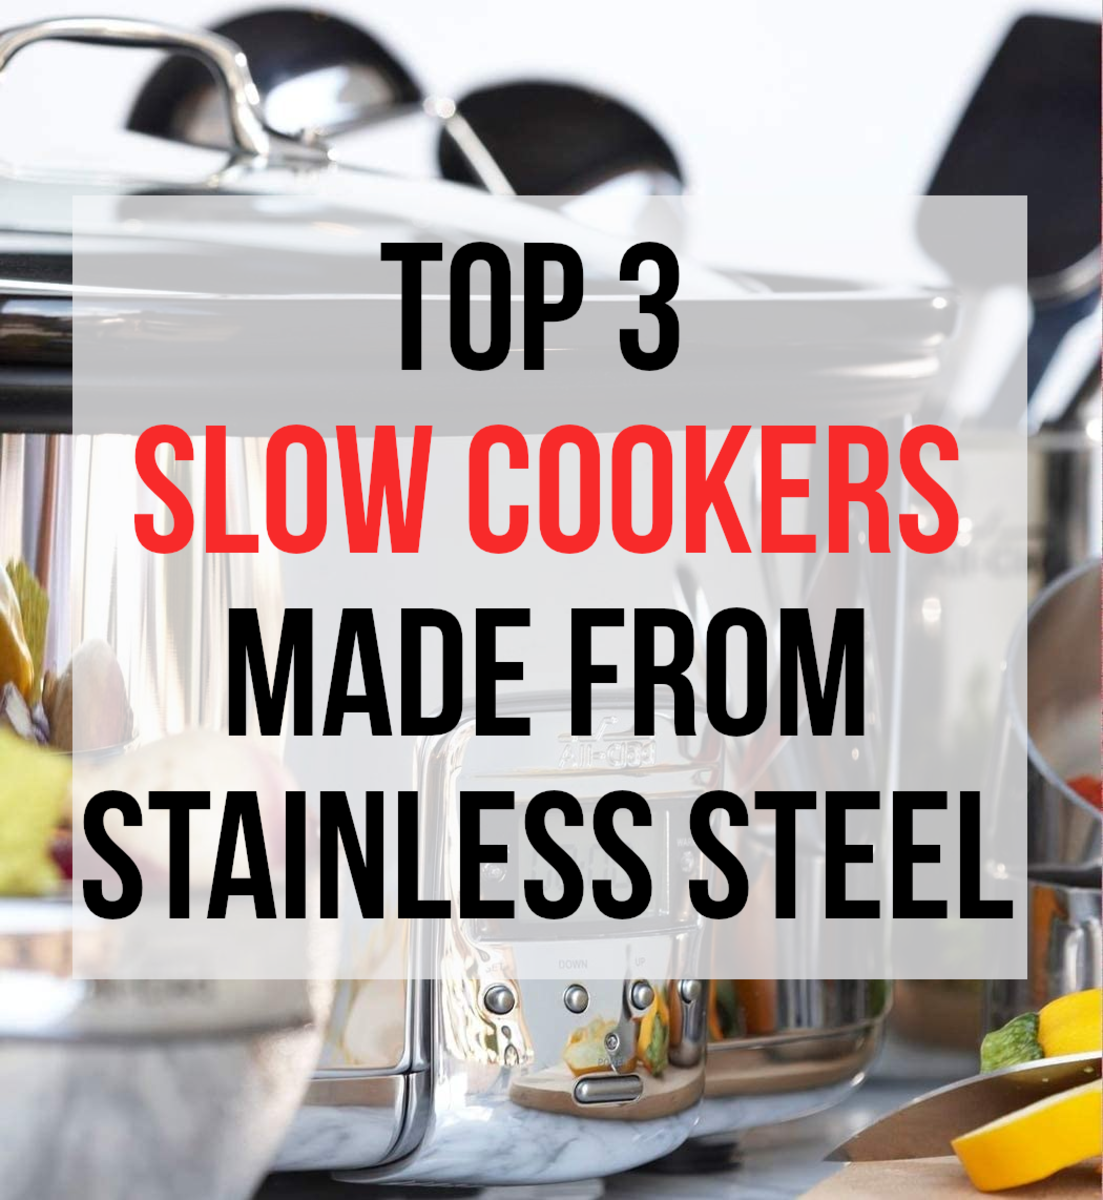 Slow cookers are a great and often easy way to make tasty and healthy meals. This article lists my top 3 recommendations and gives my reasoning and experiences...